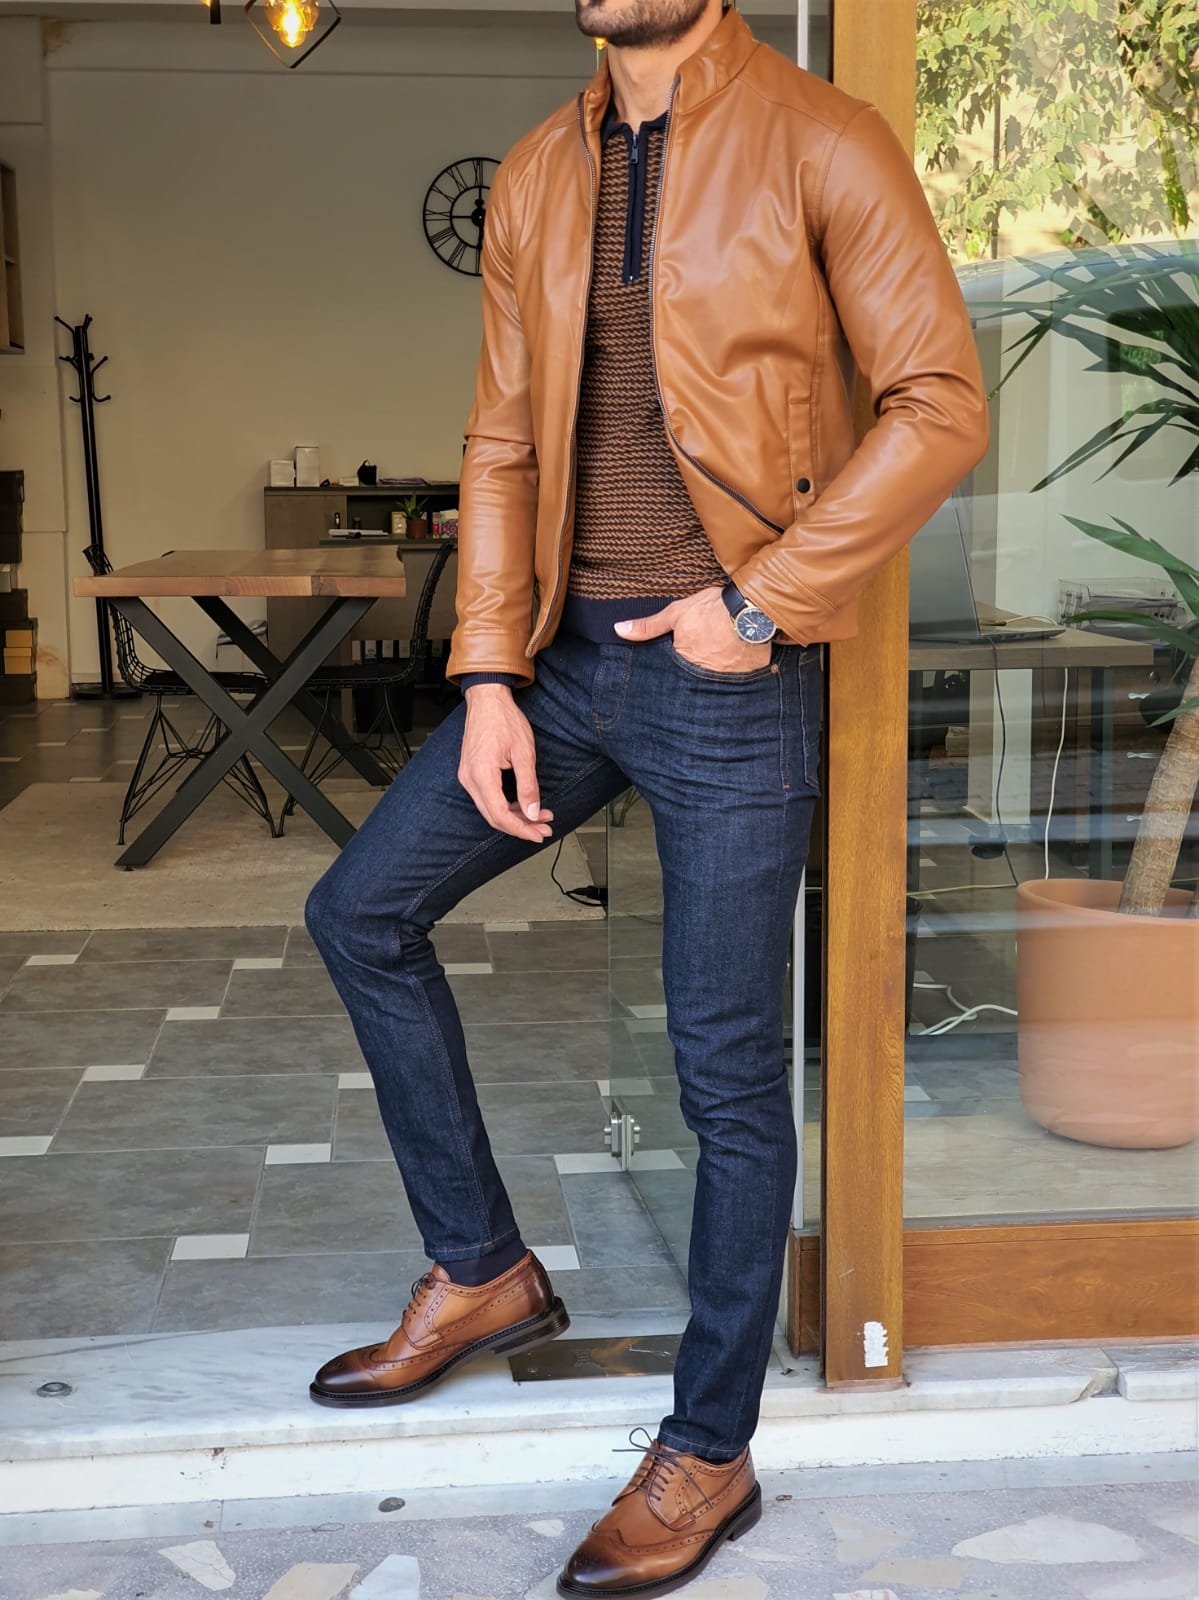 7 Men's Winter Style Tips and Ideas by GentWith Blog